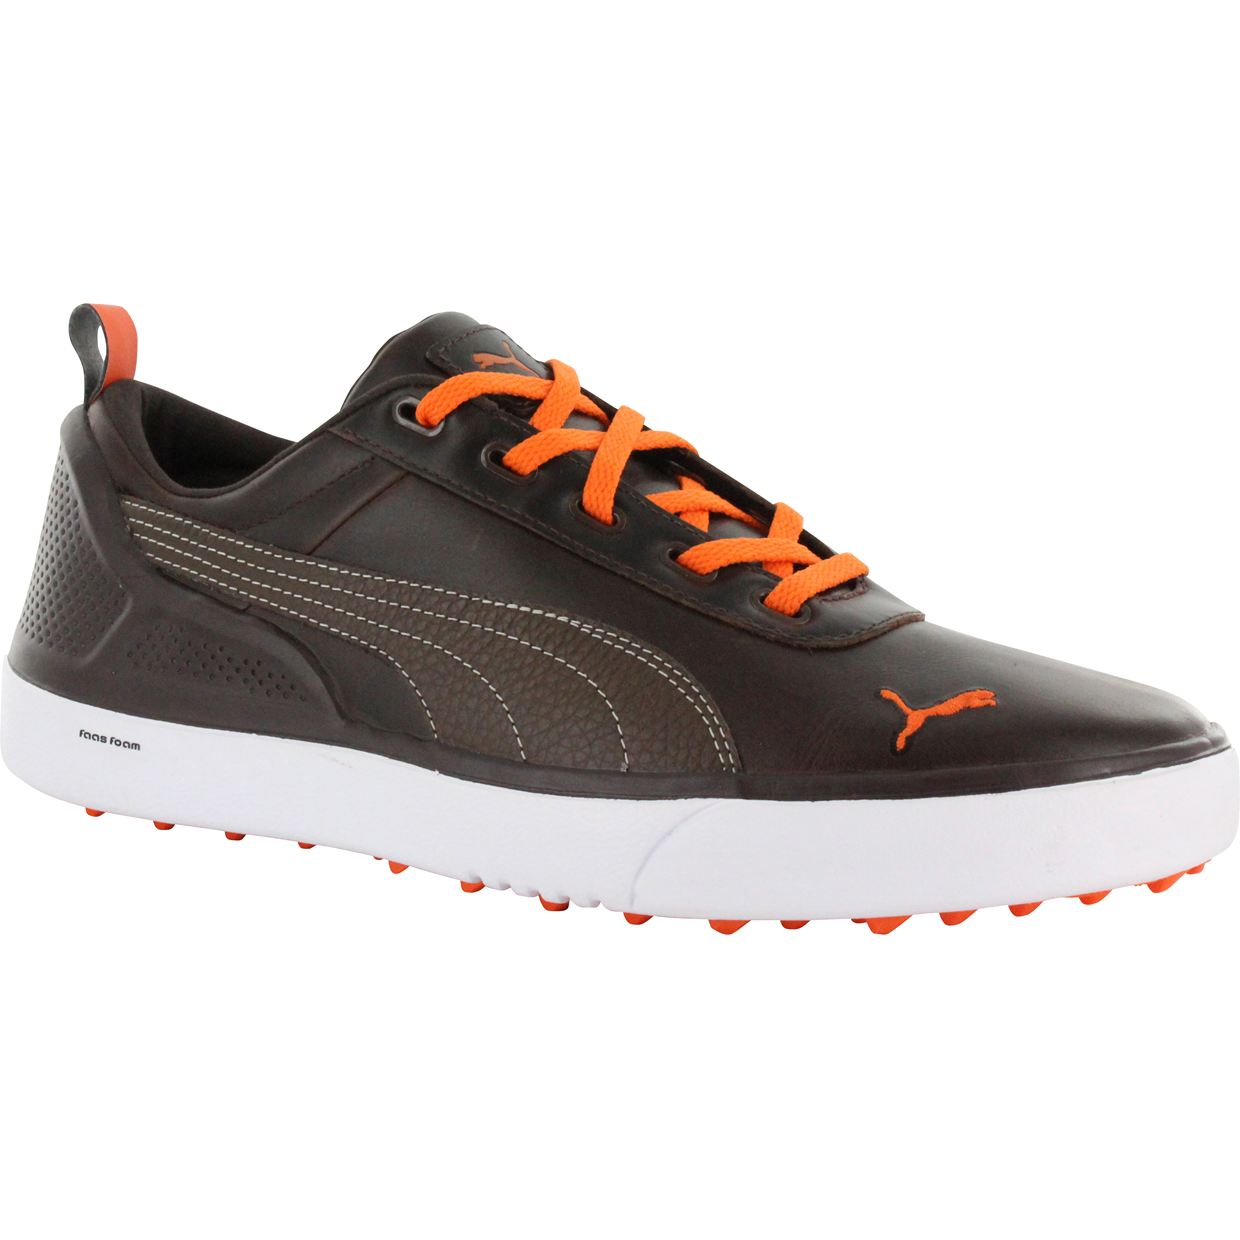 puma monolite spikeless golf shoes at globalgolfcom